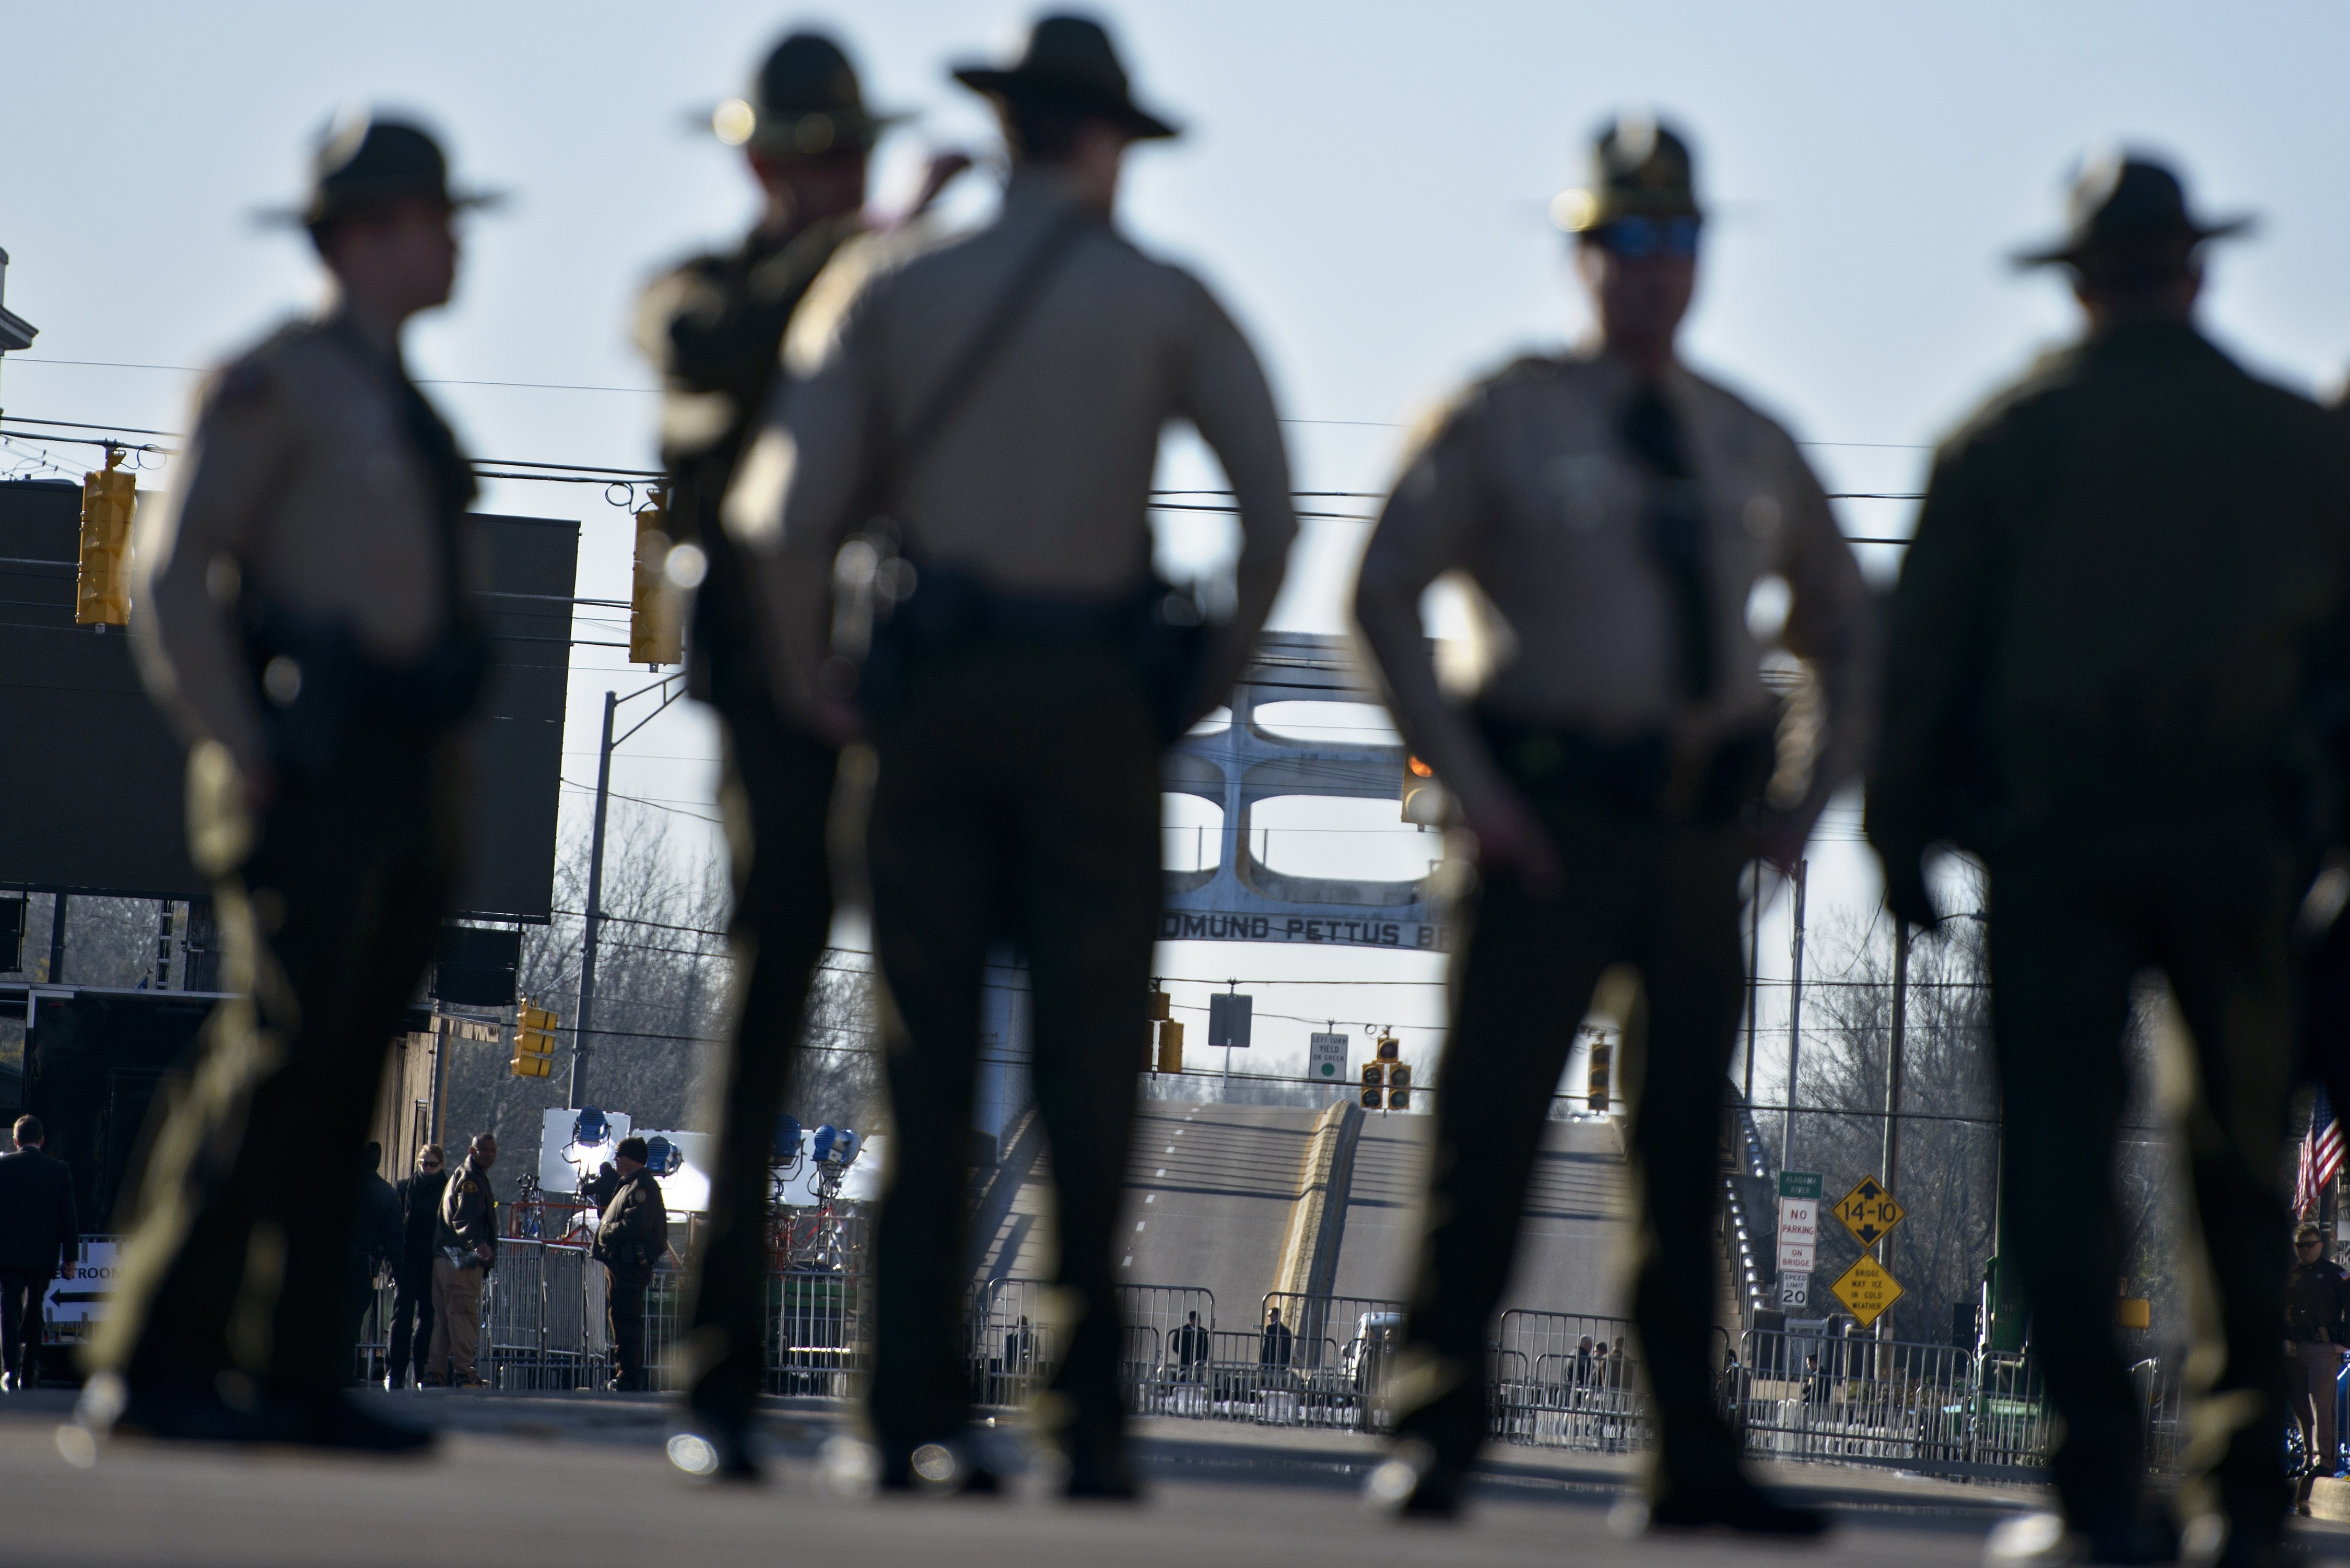 Police officers block Broad Street near the Edmund Pettus Bridge on March 7, 2015 in Selma, Alabama. US President Barack Obama and the first family will visit Selma to commemorate the 50th anniversary of Bloody Sunday, when civil rights marchers attempting to walk to the Alabama capital of Montgomery to end voting discrimination against African Americans clashed with police. AFP PHOTO/BRENDAN SMIALOWSKI (Photo credit should read BRENDAN SMIALOWSKI/AFP/Getty Images)